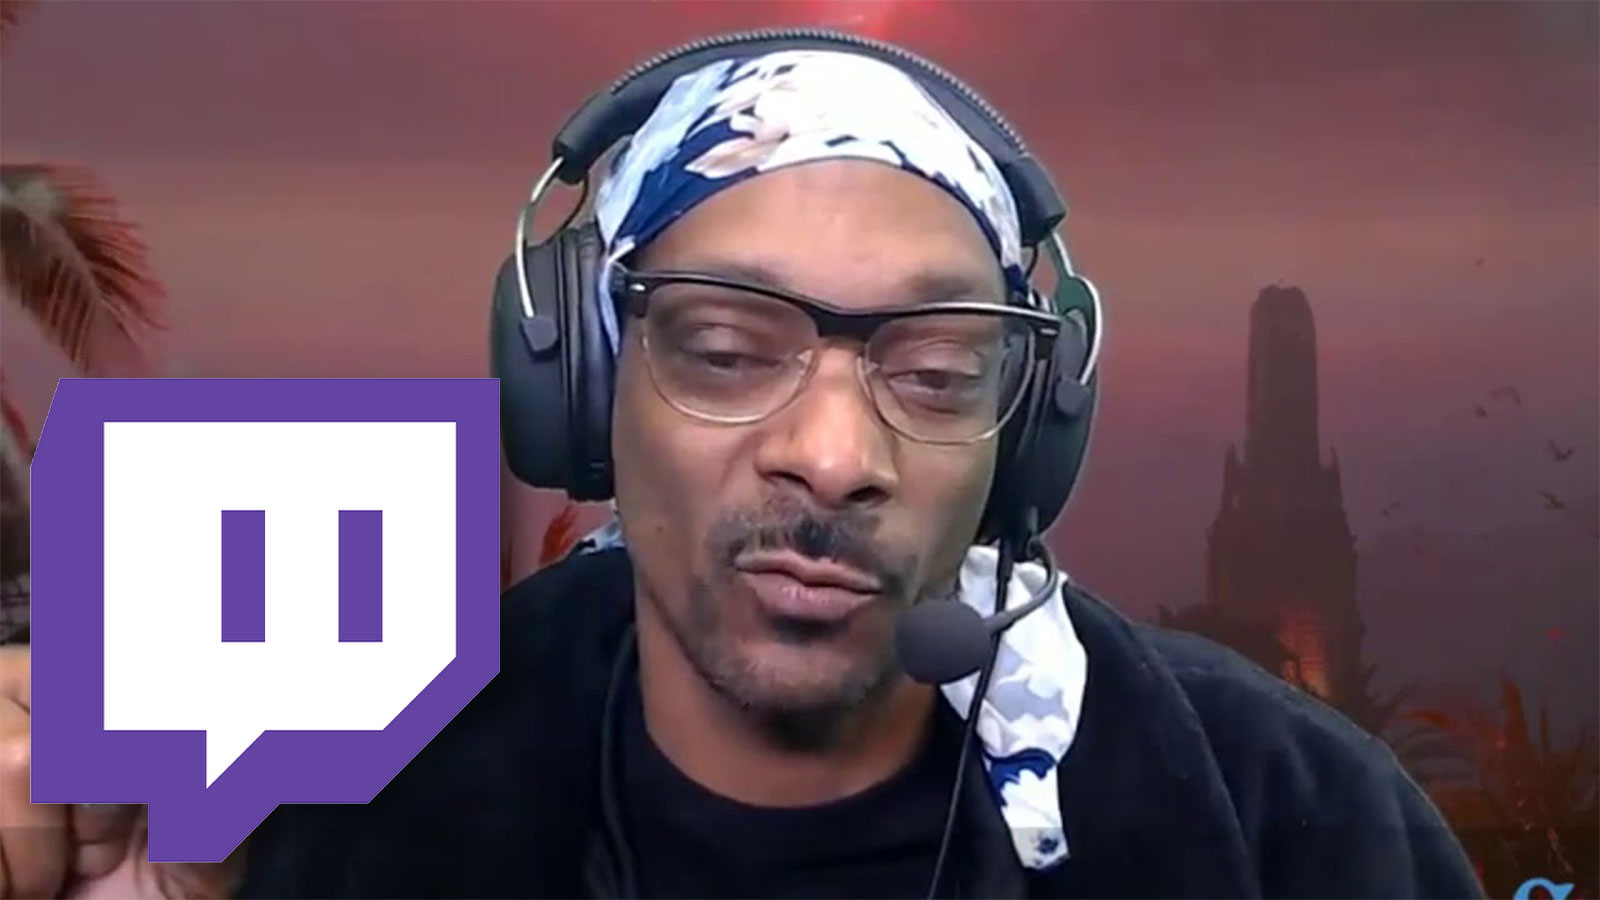 Snoop Dogg on twitch.com